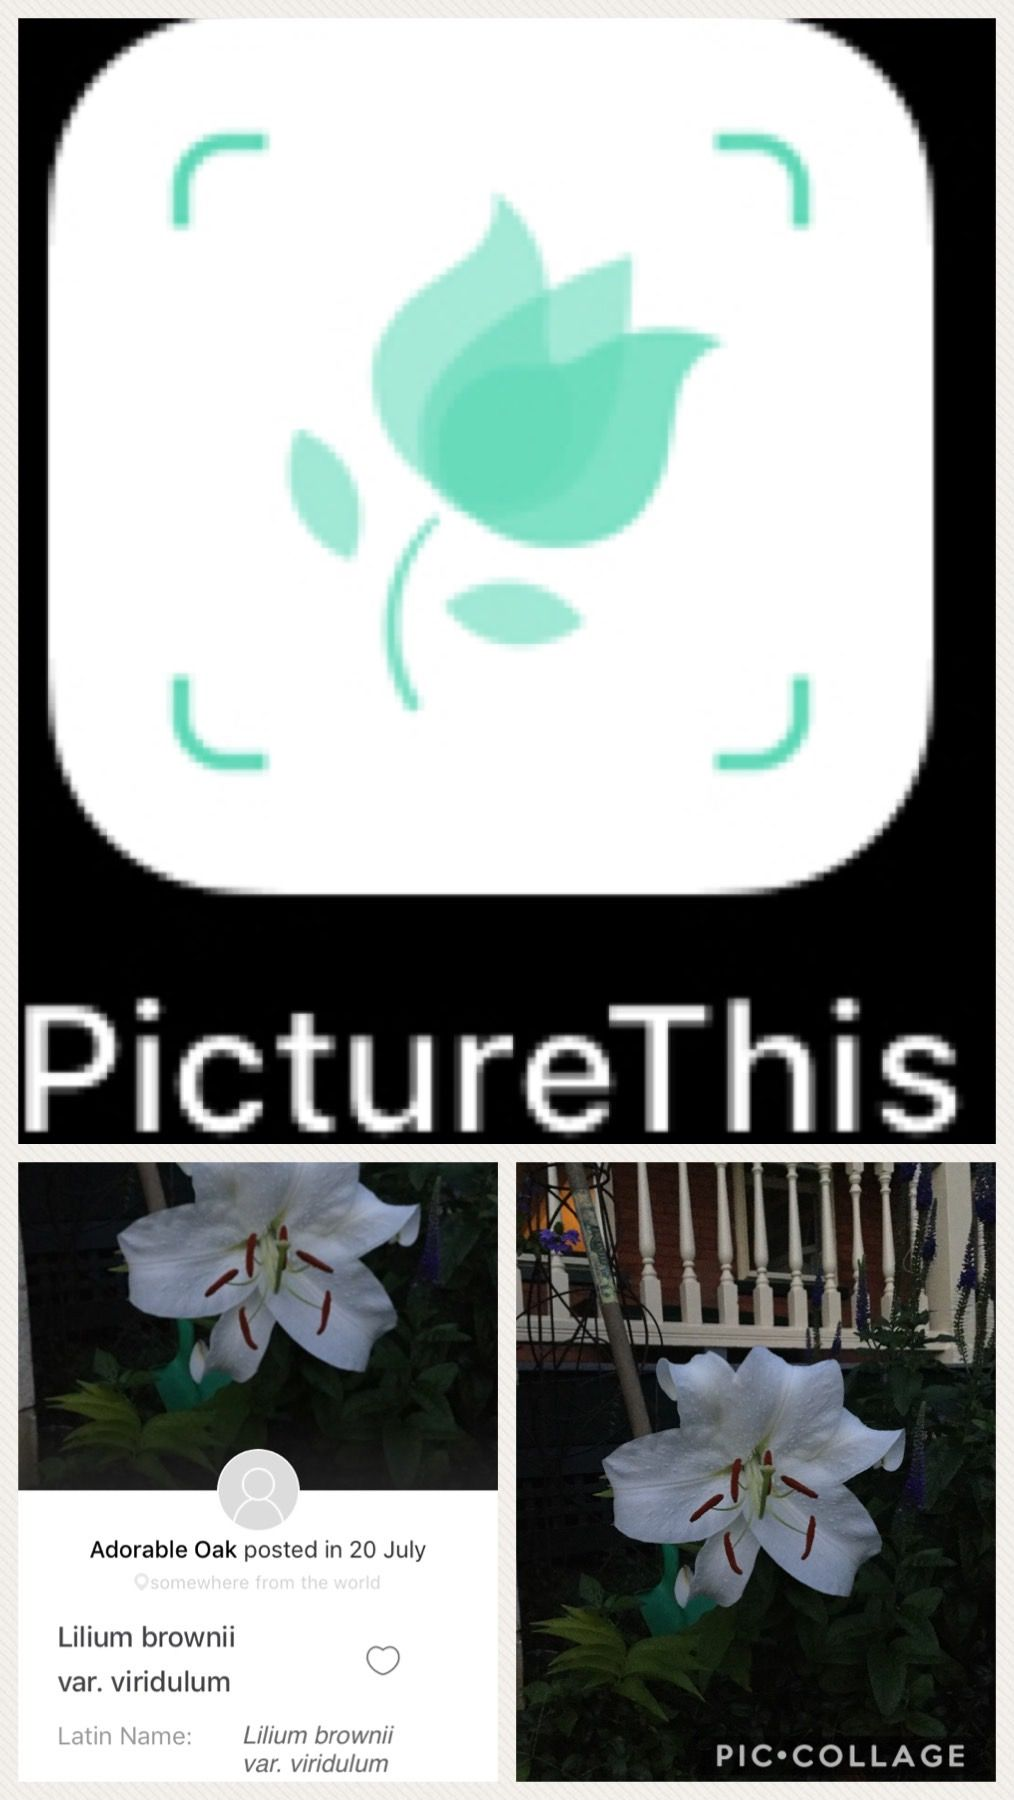 PictureThis is a great app to use for identifying plants